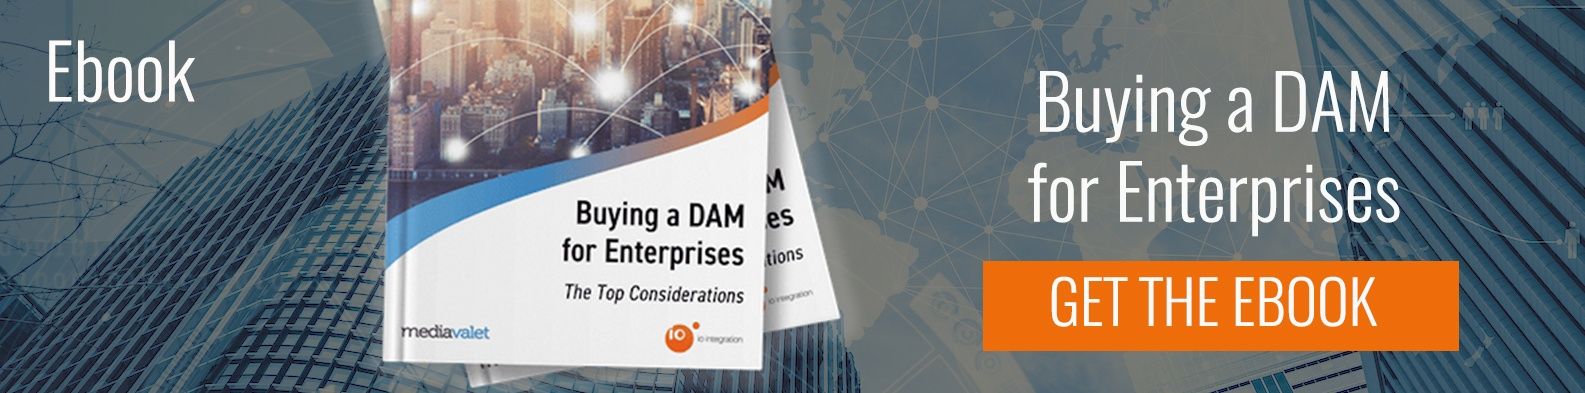 Buying a DAM for Enterprises